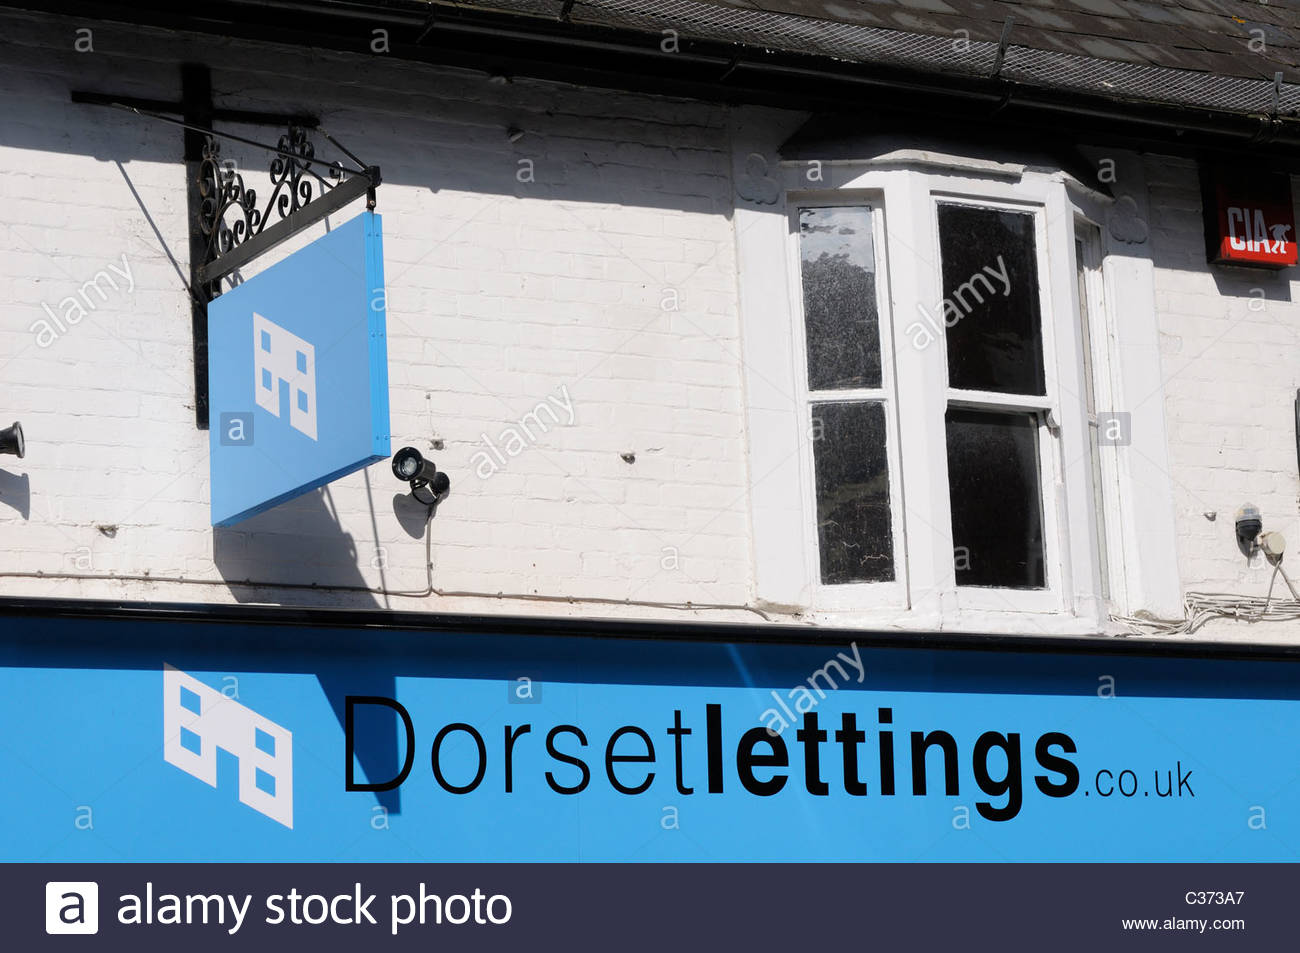 Looking u at the signs above Dorset property lettings agent  office in Wimborne Minster, Dorset England - Stock Image